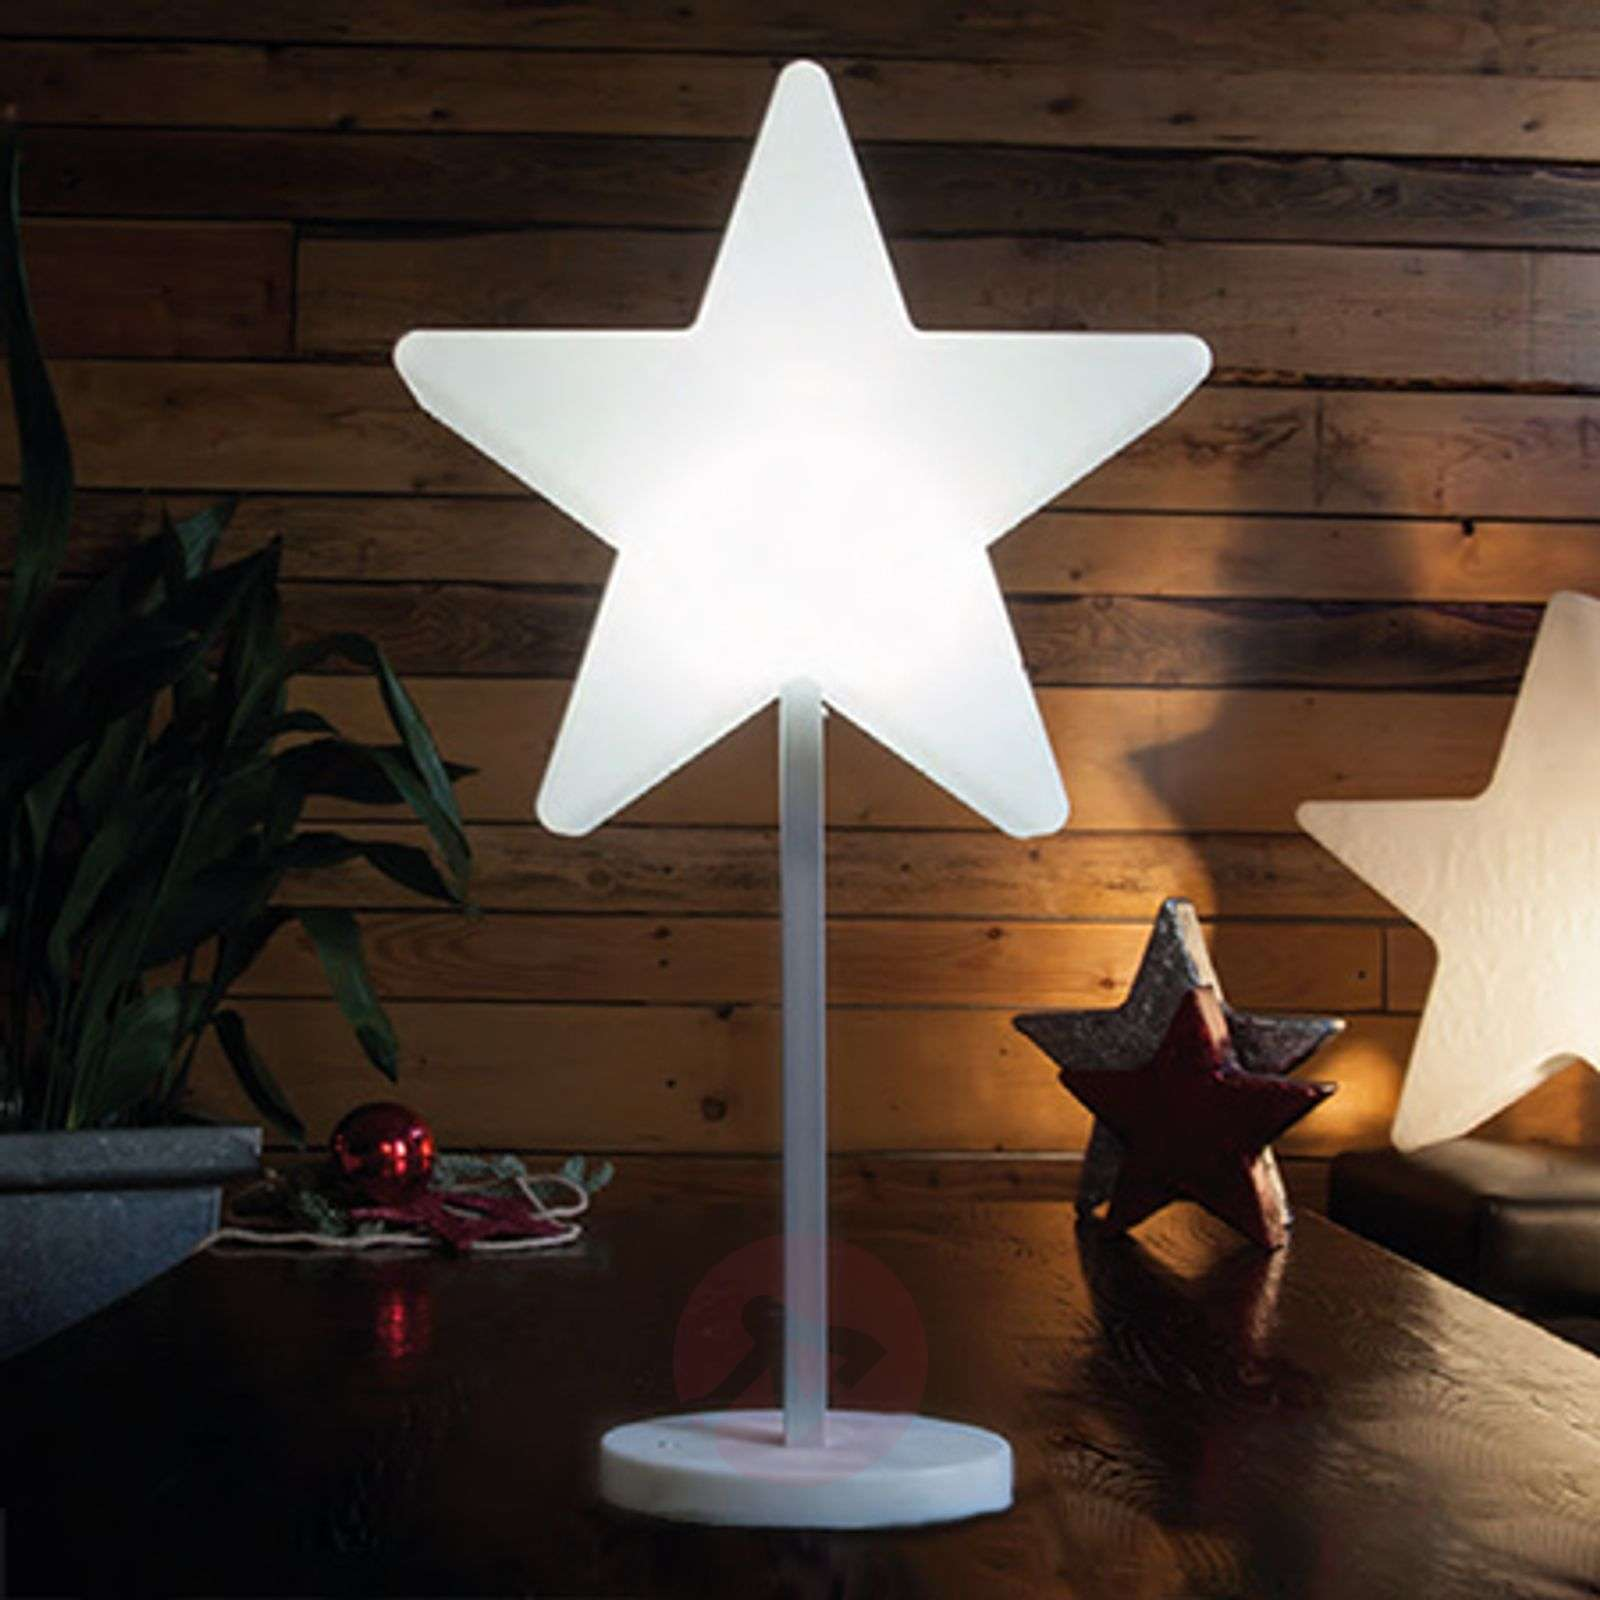 Jolie lampe décorative LED Shining Window Star-1004095-01